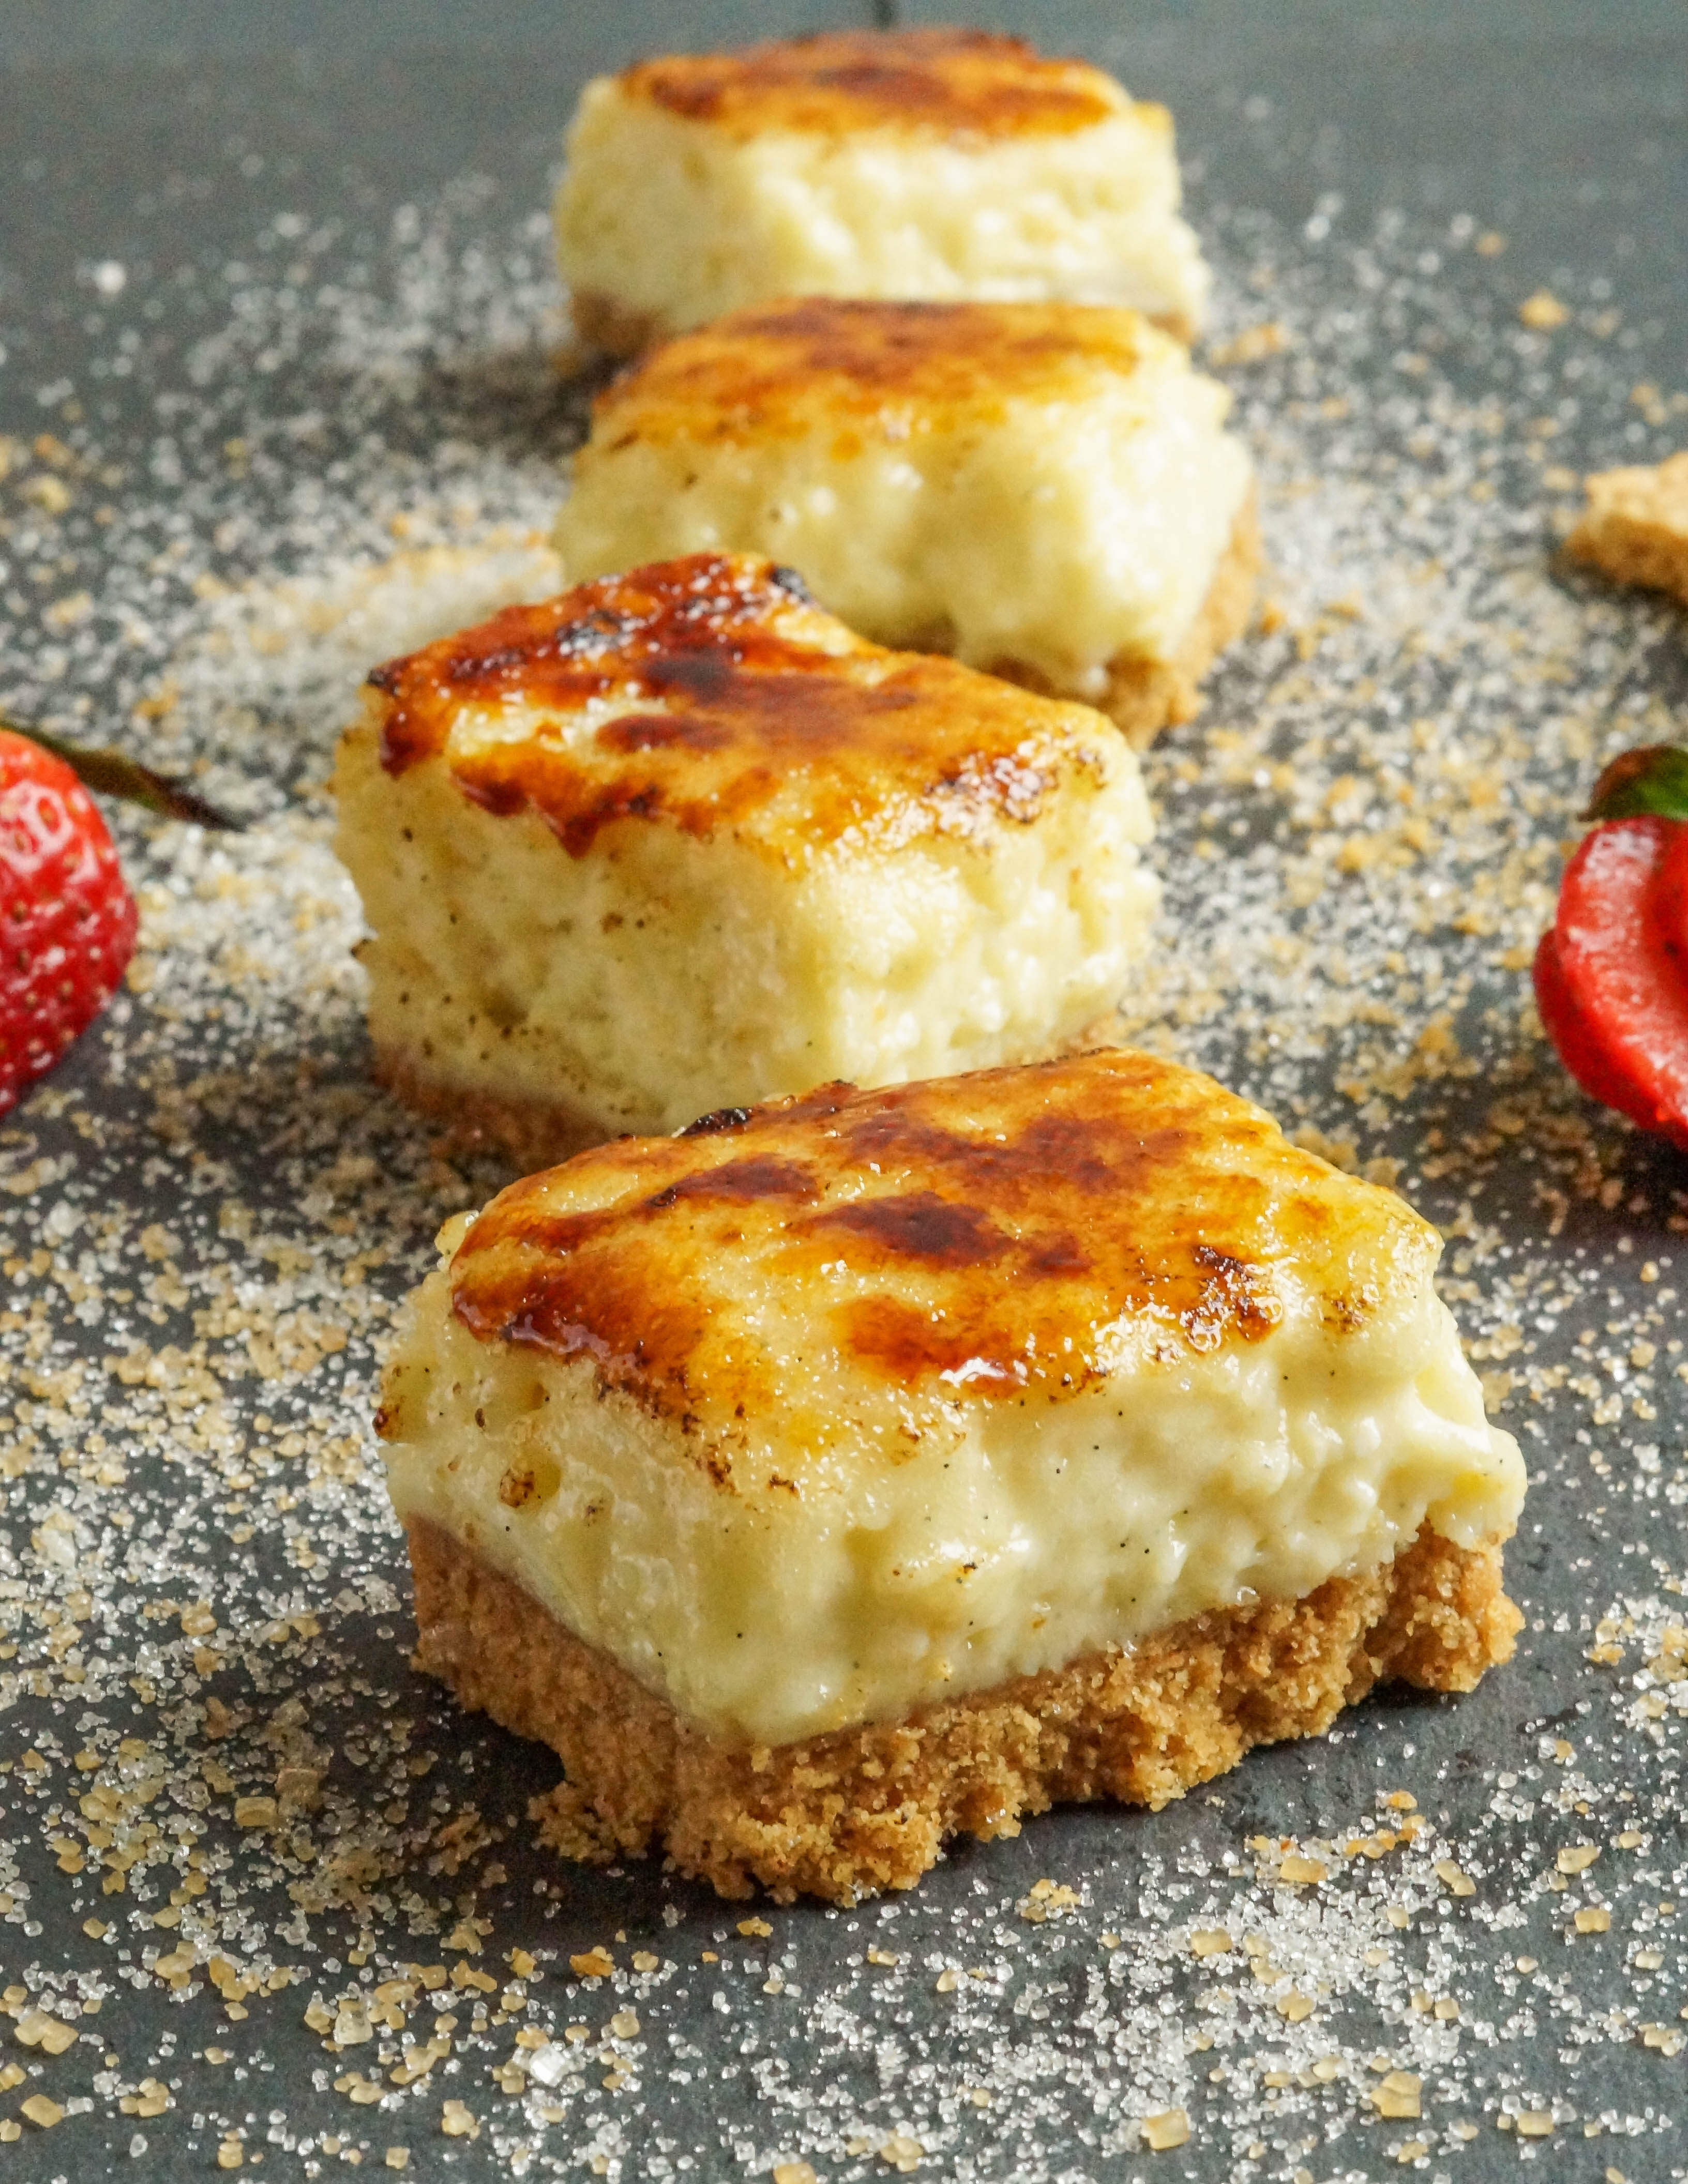 #FifteenCheesecakes: Creme Brulee Cheesecake Bars